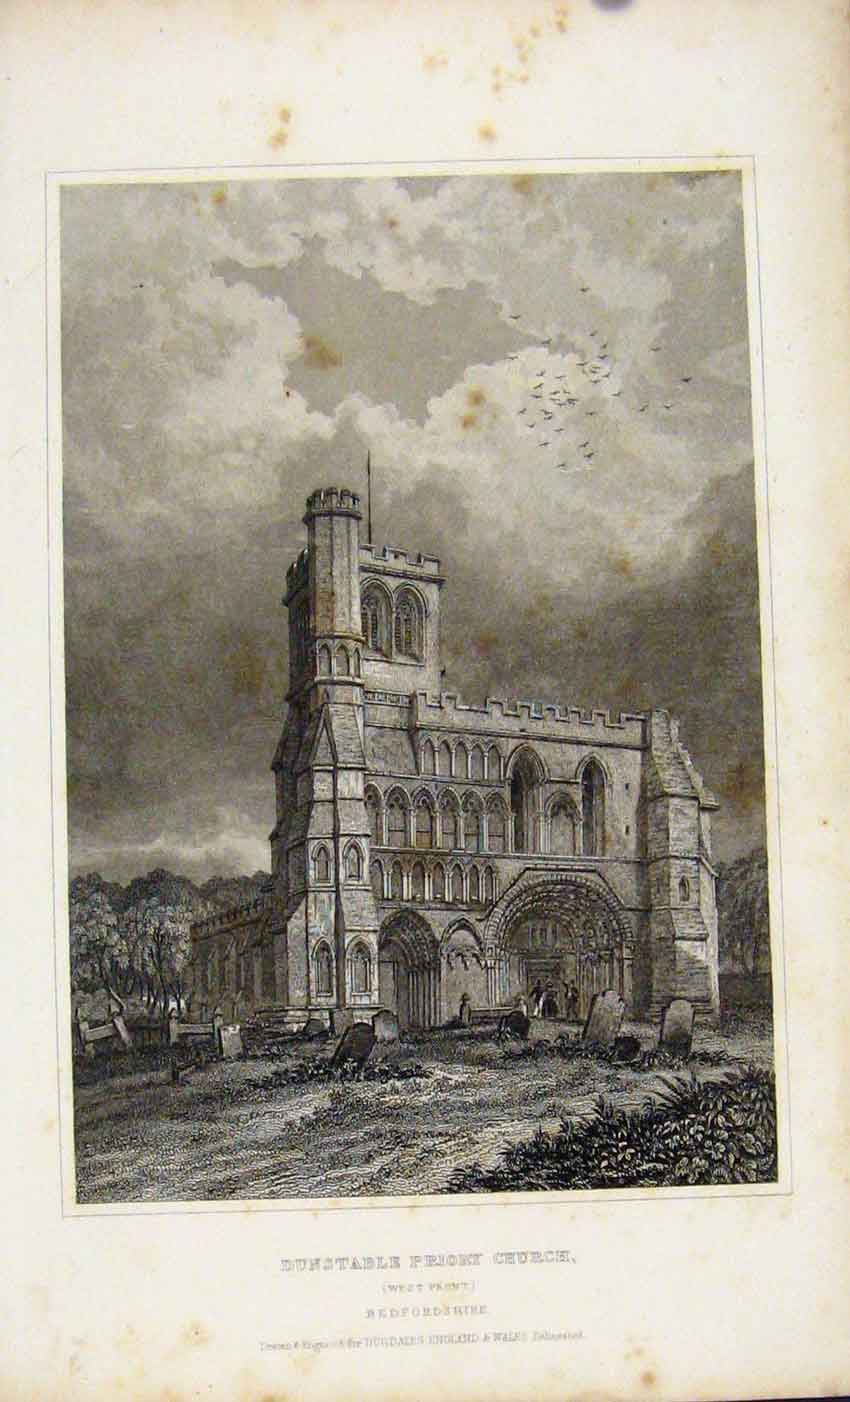 Print C1845 Dugdale Dunstable Priory Church Bedford 827541 Old Original